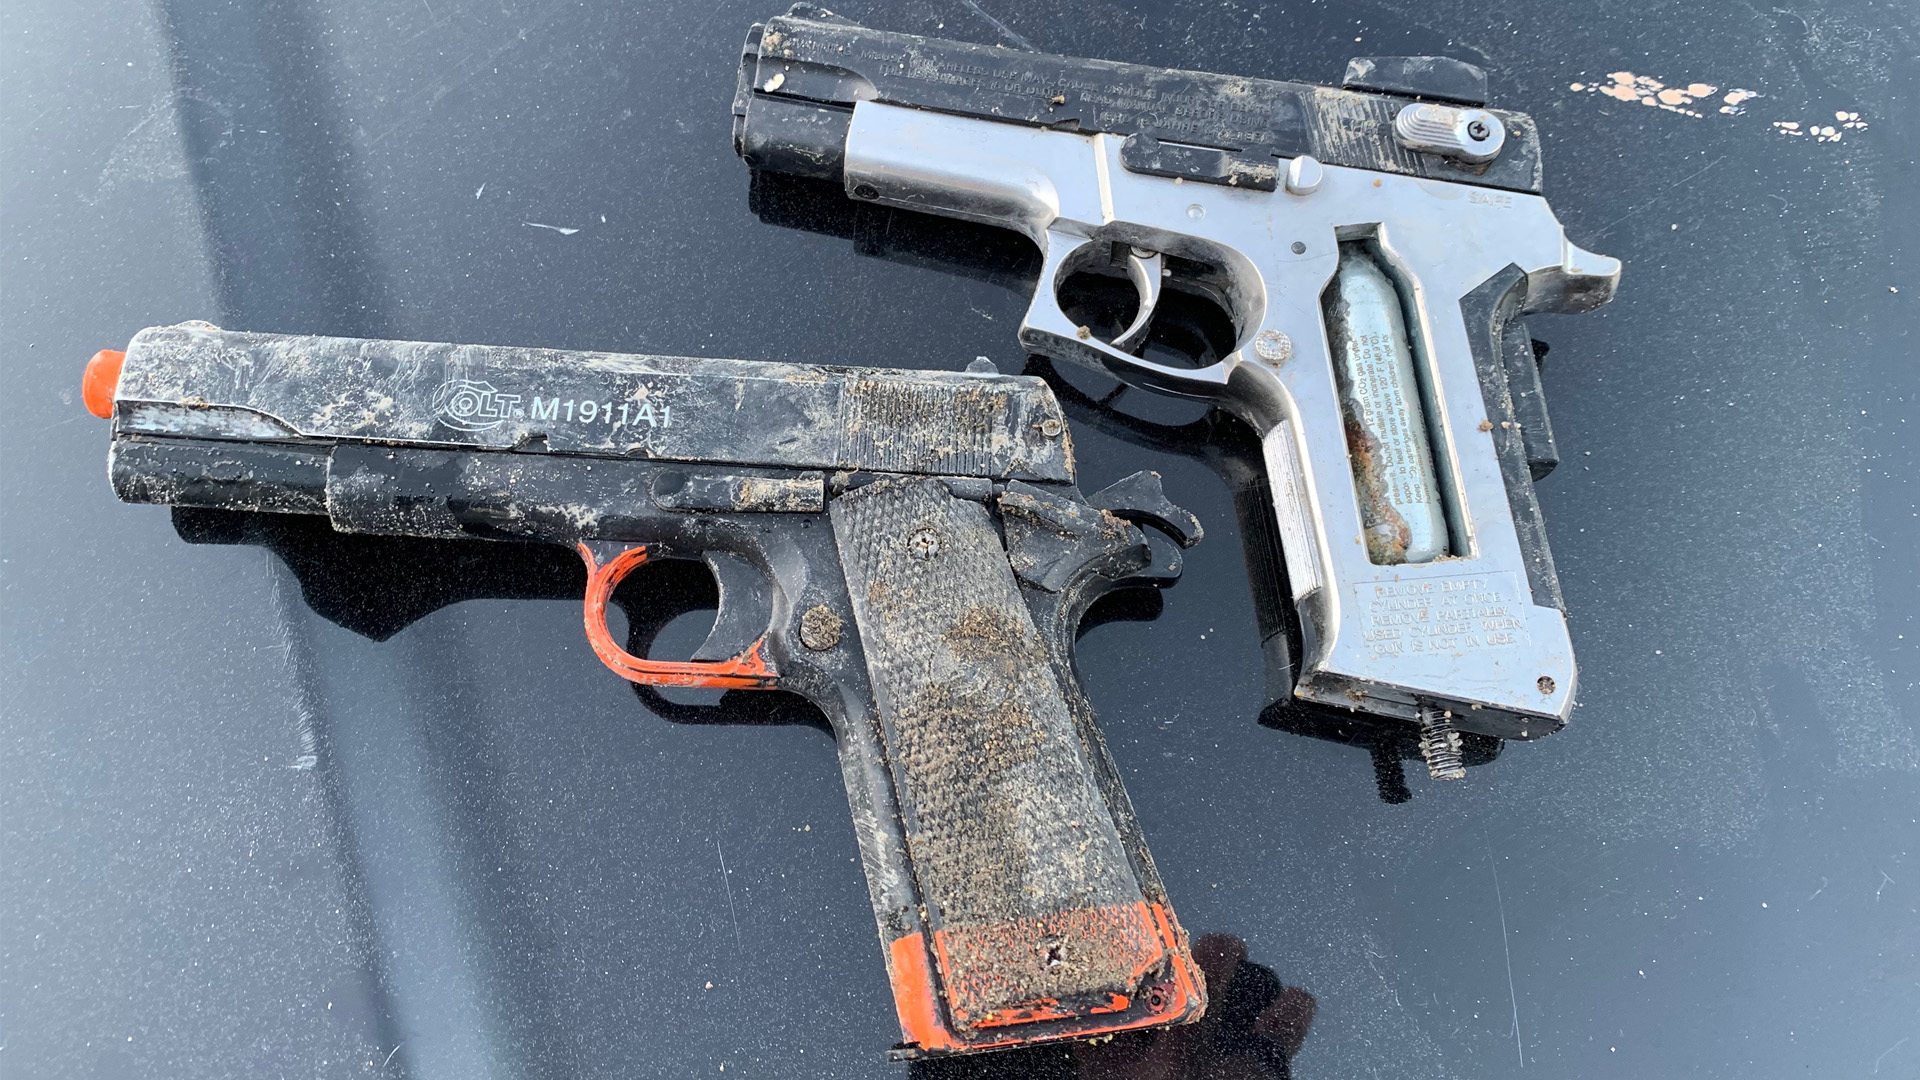 Police found two replica firearms after arresting Jeffrey Wheelock, 27, on Feb. 25, 2020. (Ventura Police Department)